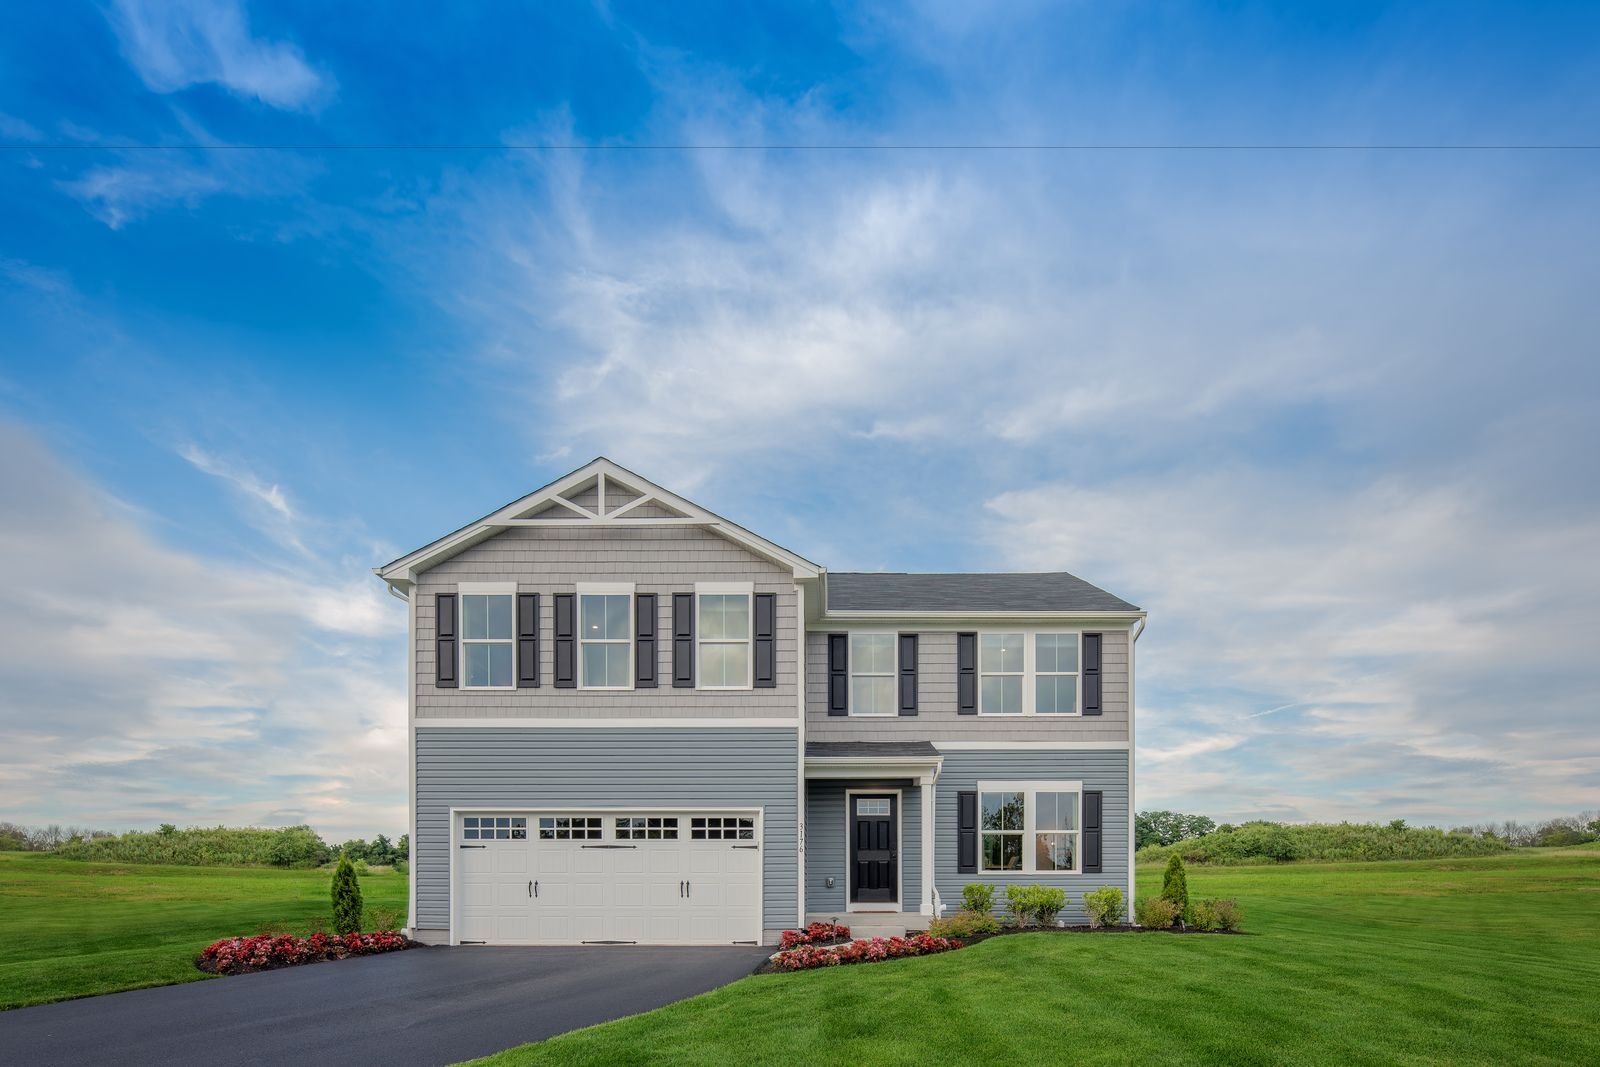 The perfect combination of location, yard size, and new homes:The Oaks by Ryan Homes is New Kent's lowest-priced community featuring single-family homes with 4+ beds, 2-car garages & up to ½ acre lots. Just a 2-min drive to New Kent HS!Click here to be a VIP.